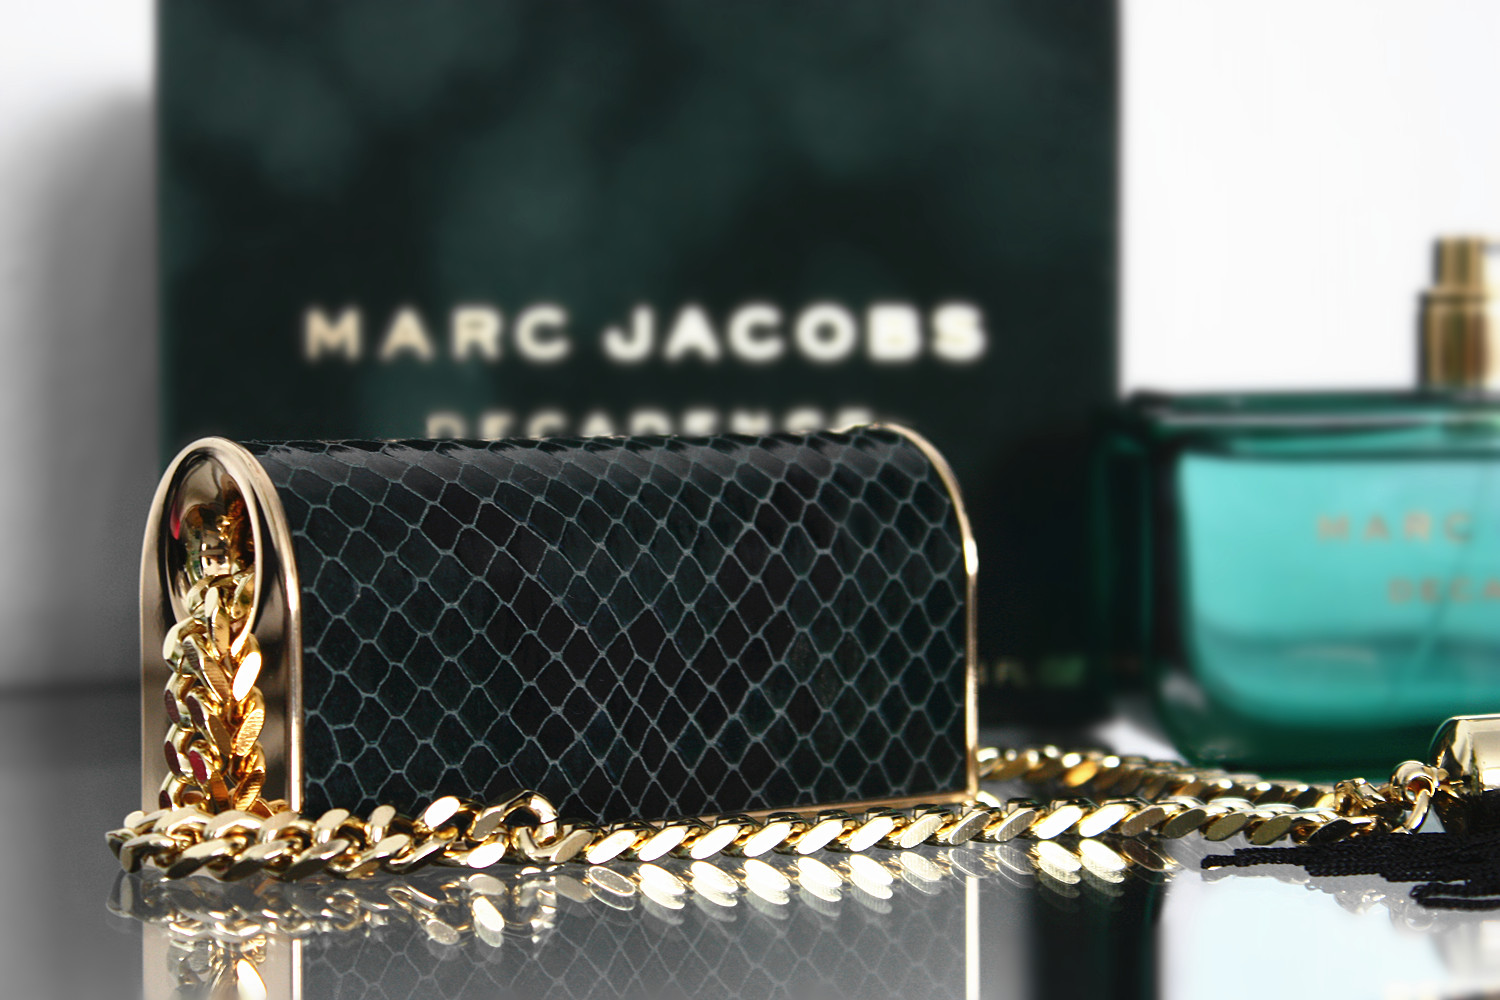 marc jacobs decadence opinie, marc jacobs decadence, decadence perfumy, marc jacobs perfumy